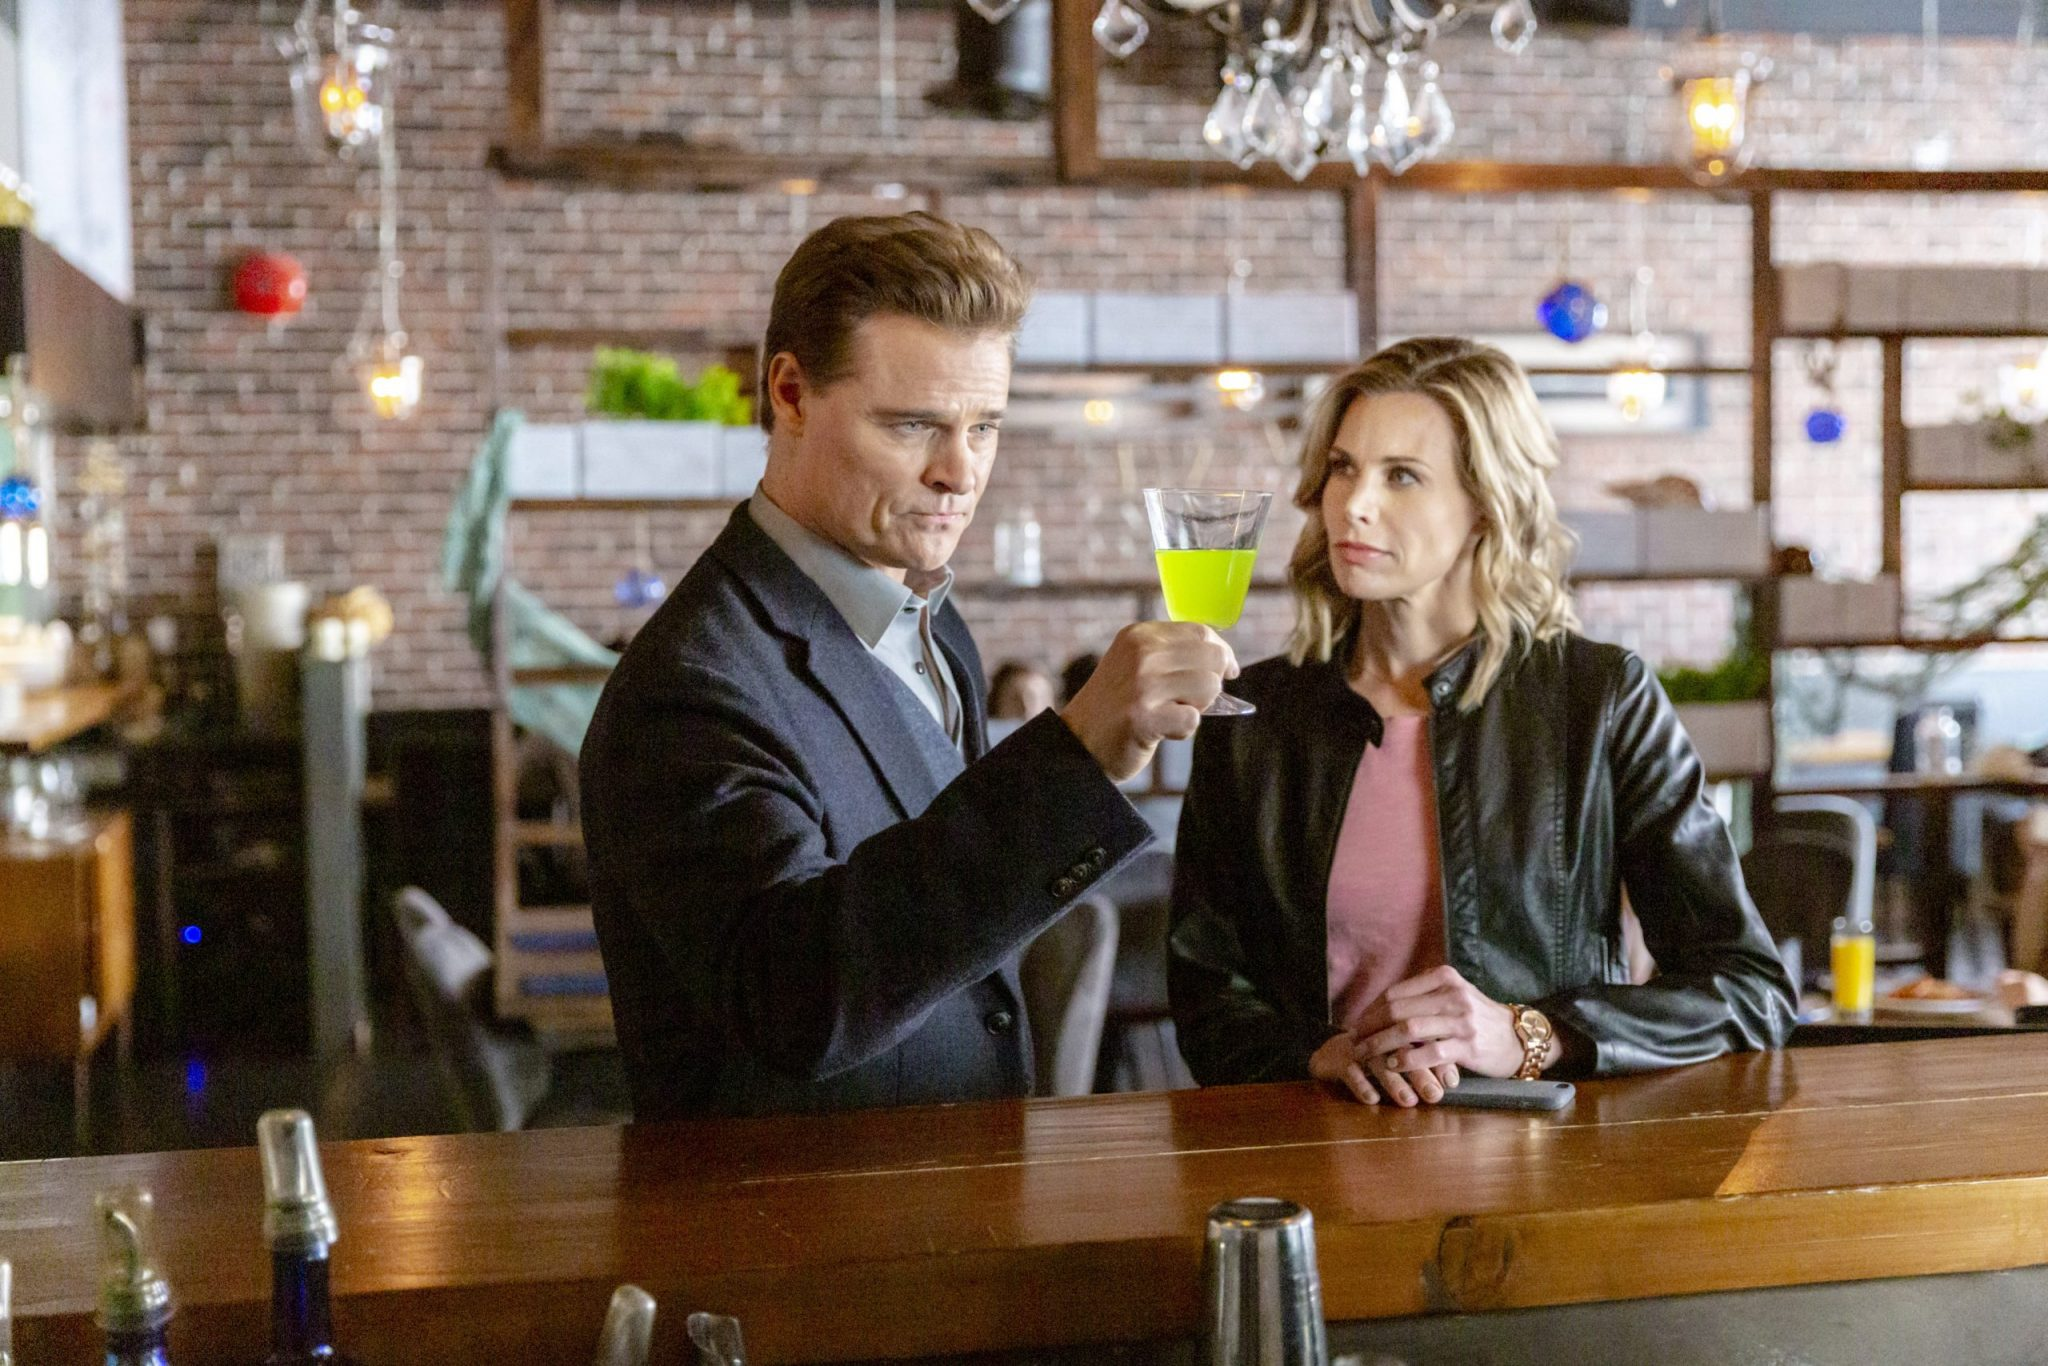 Gourmet Detective: Roux The Day, Photo: Dylan Neal, Brooke Burns Credit: ©2019 Crown Media United States LLC/Photographer:Ryan Plummer